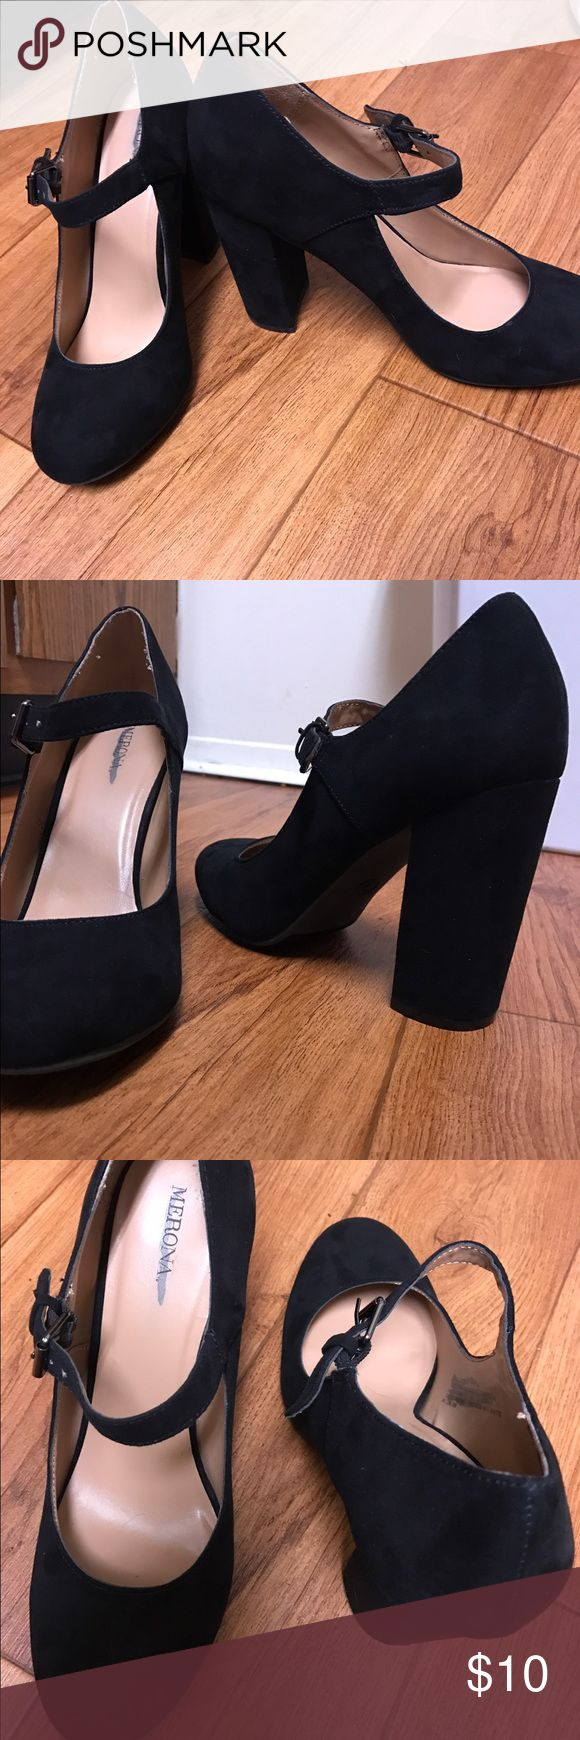 LIKE NEW! Merona Black Suede-like Mary Jane Heels Merona black suede-like Mary Jane style 4-inch heels. These are a re-Posh. Super cute, but about 1 inch too tall for me! They look brand new! Size 9. Buy 3 or more items from my closet and receive a 20% discount!! Merona Shoes Heels